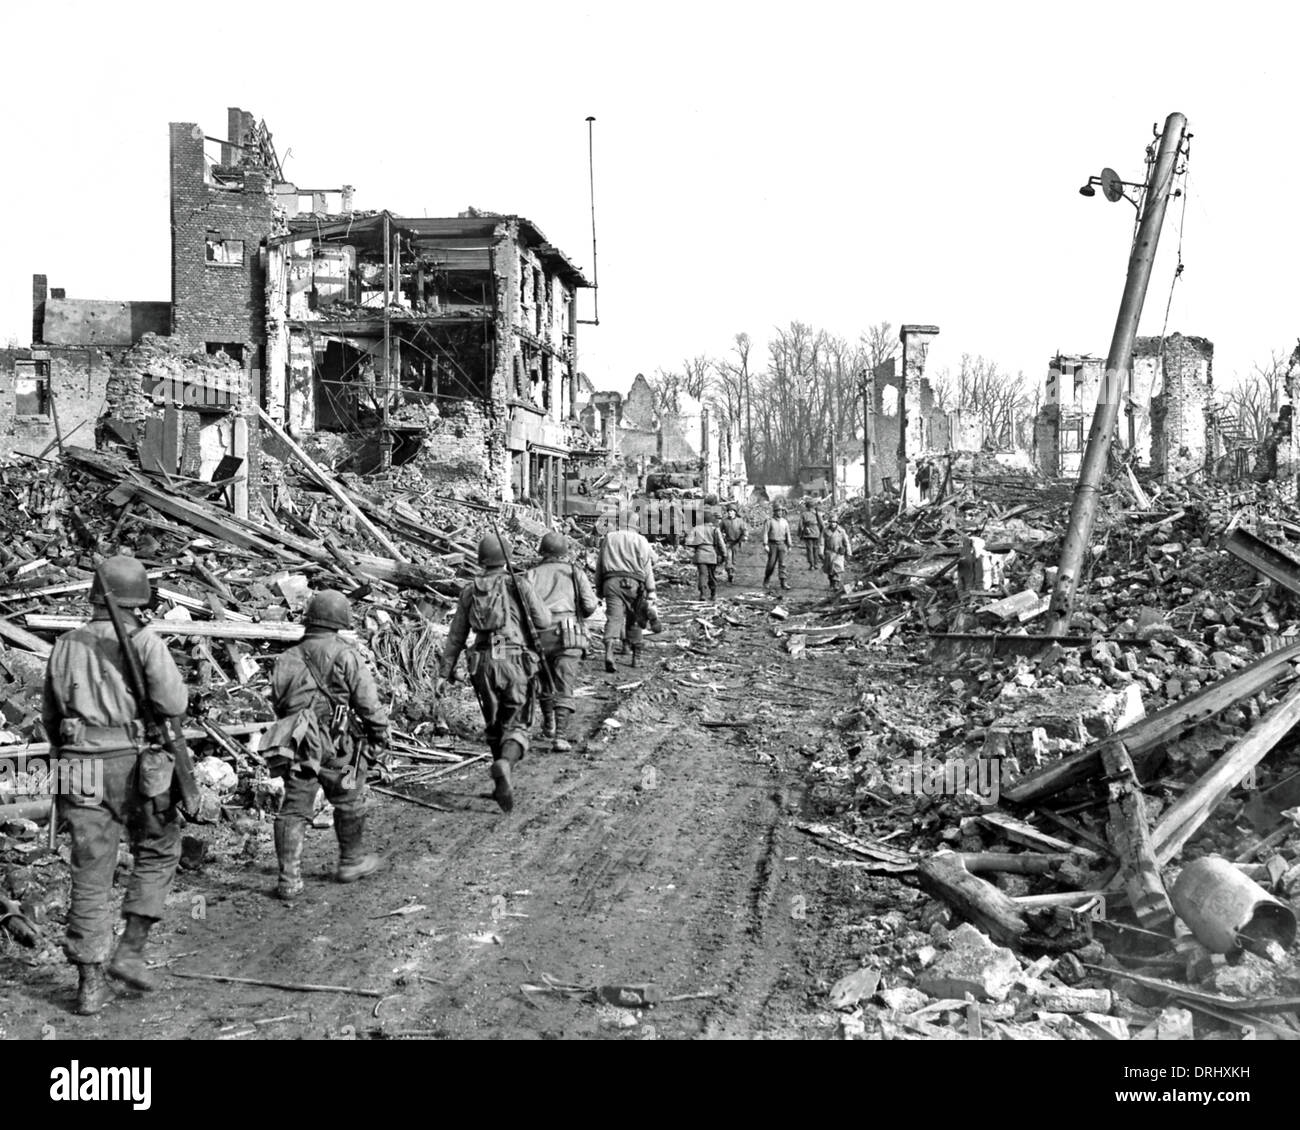 Devastation at Julich, Germany, WW2 - Stock Image